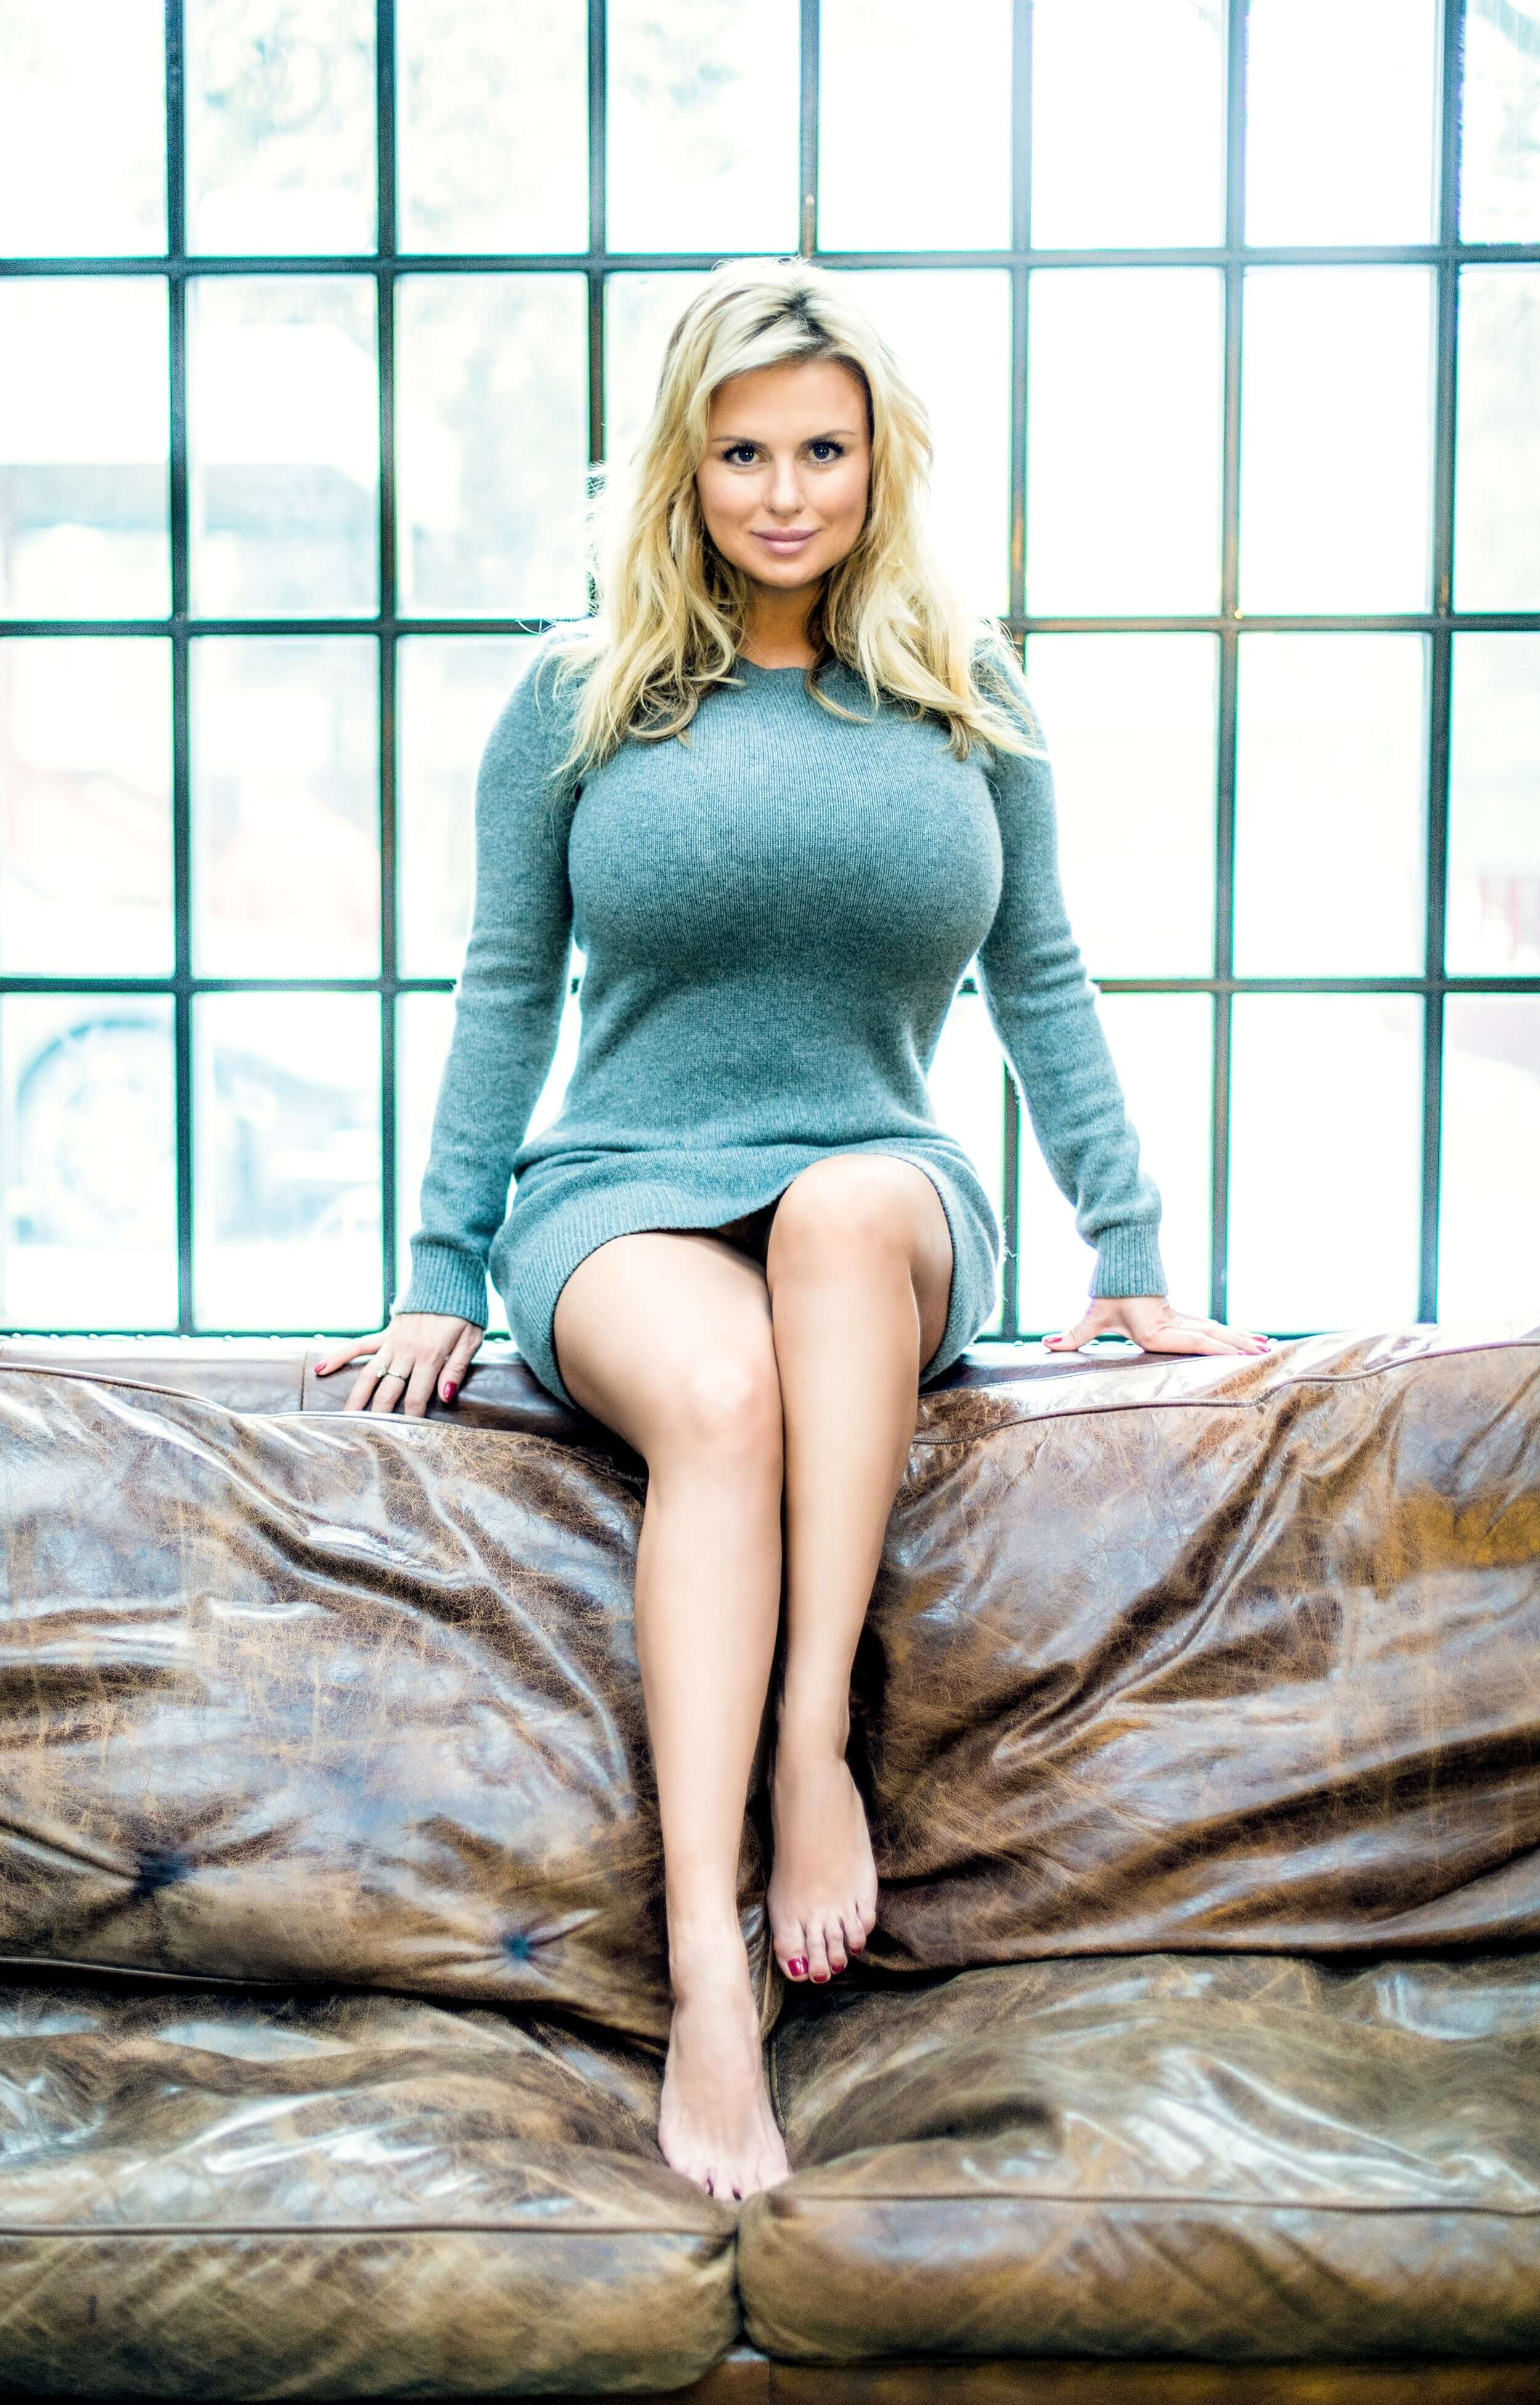 49 Sexy Anna Semenowich boobs pictures that are sure to